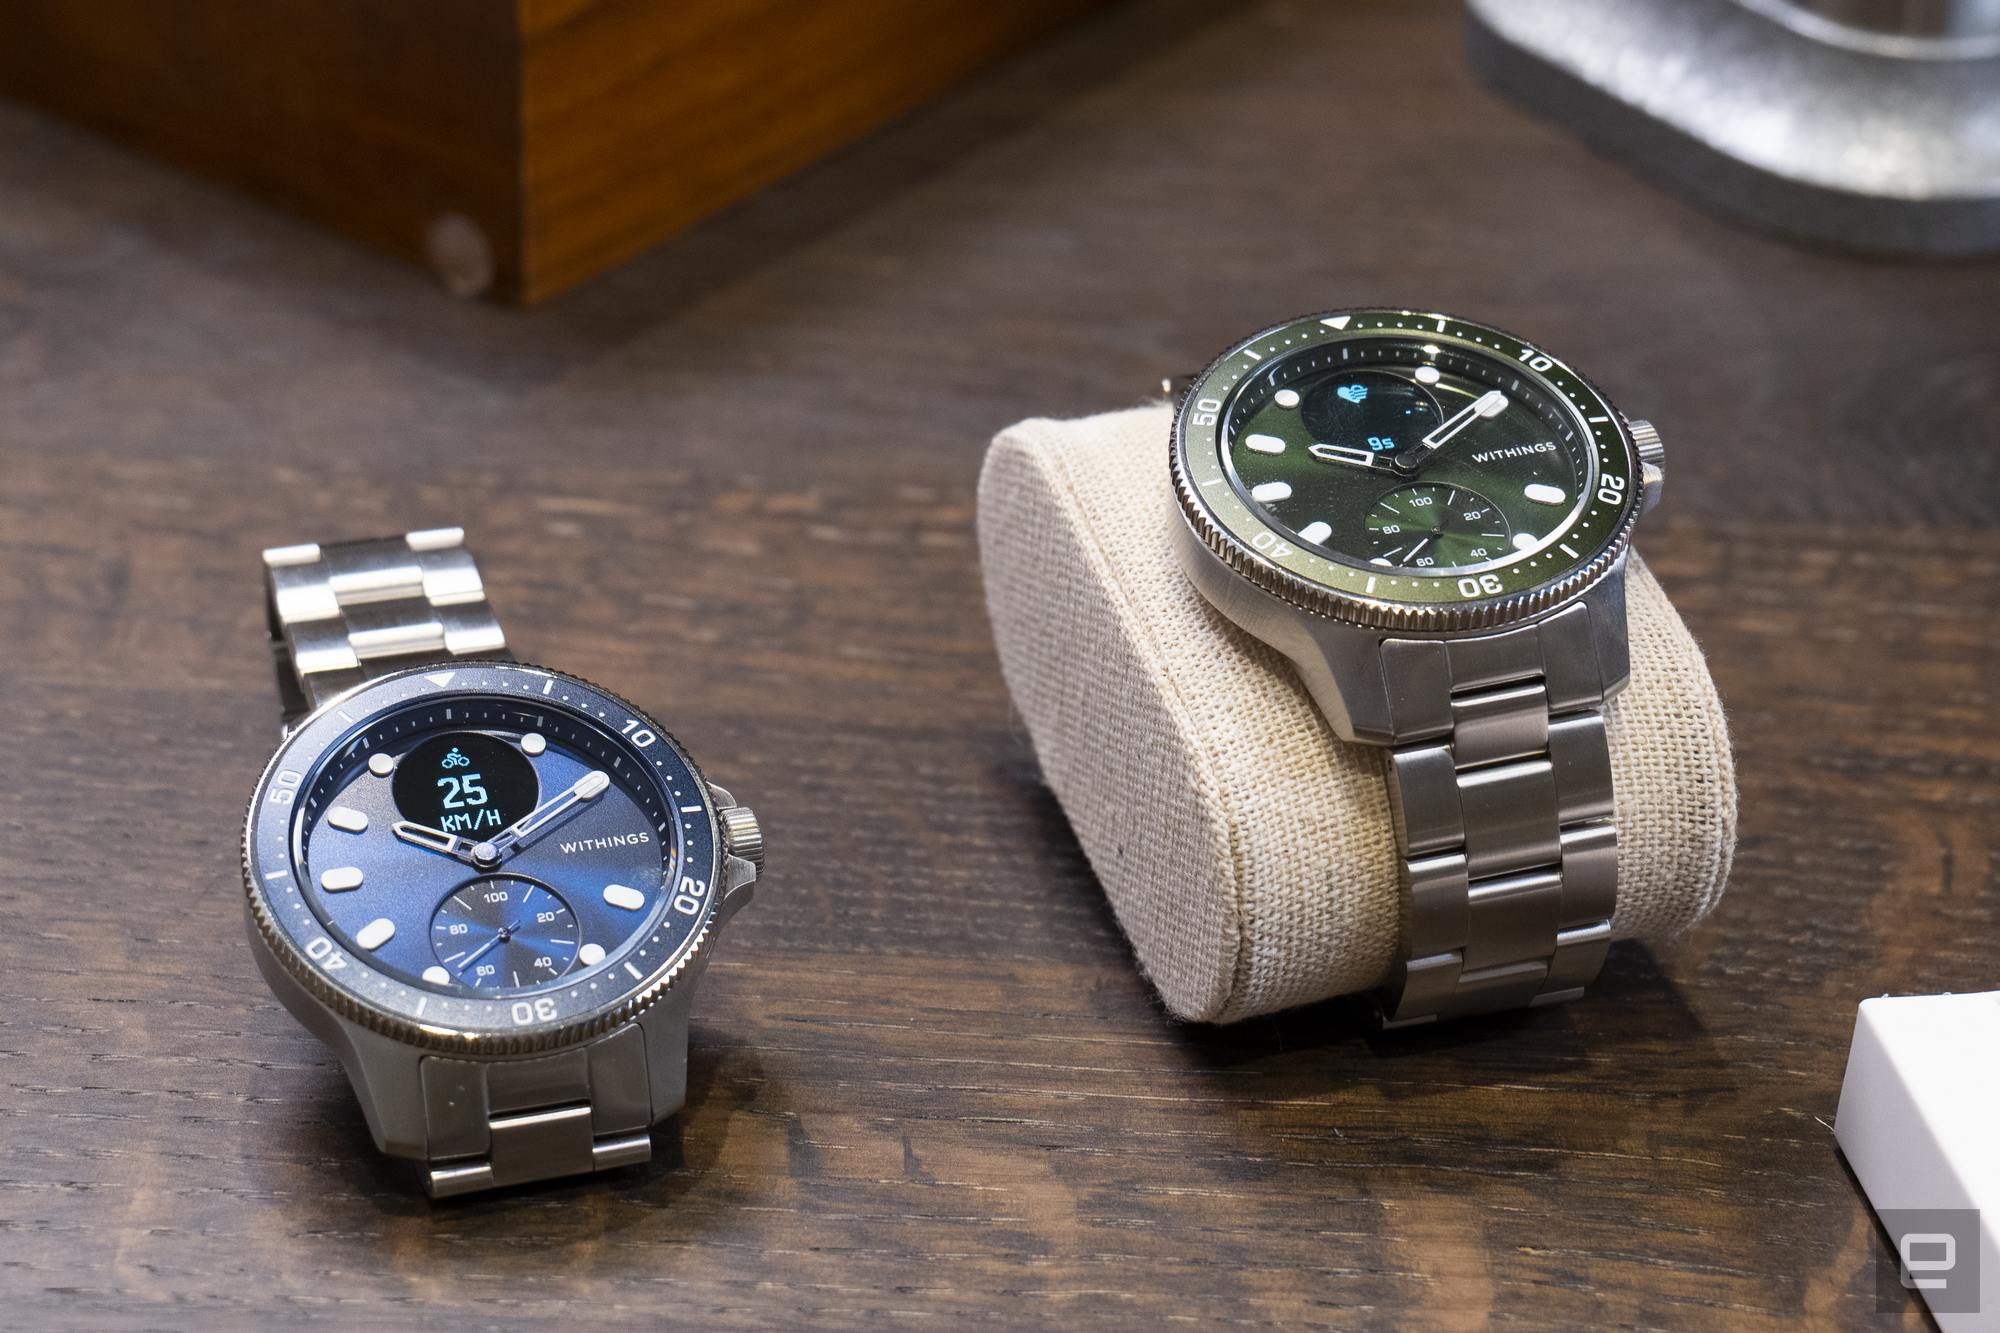 <p>Images of the Withings ScanWatch Horizon taken at the device's launch event in Paris.</p>